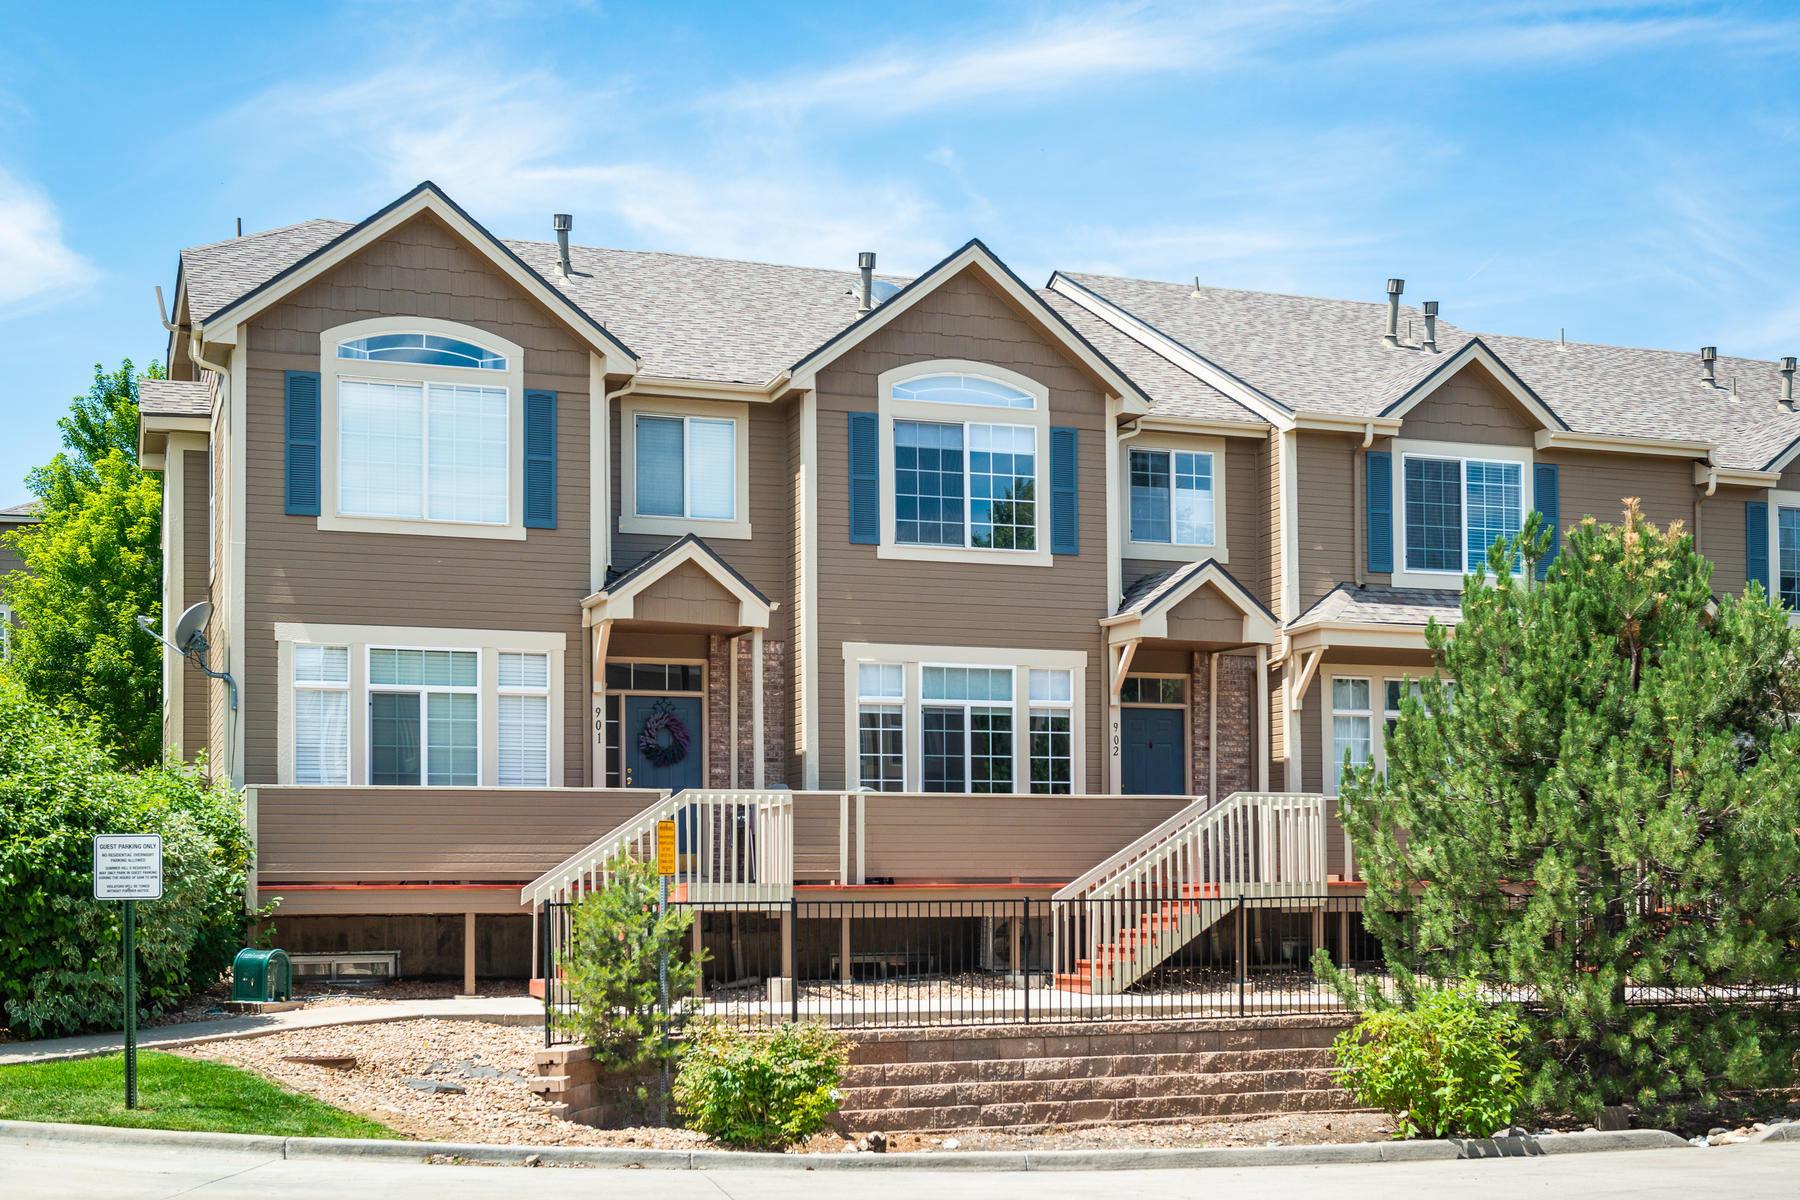 Townhouse for Active at Wonderfully Updated And Immaculately Maintained Townhouse 5555 E Briarwood Ave #902 Centennial, Colorado 80122 United States